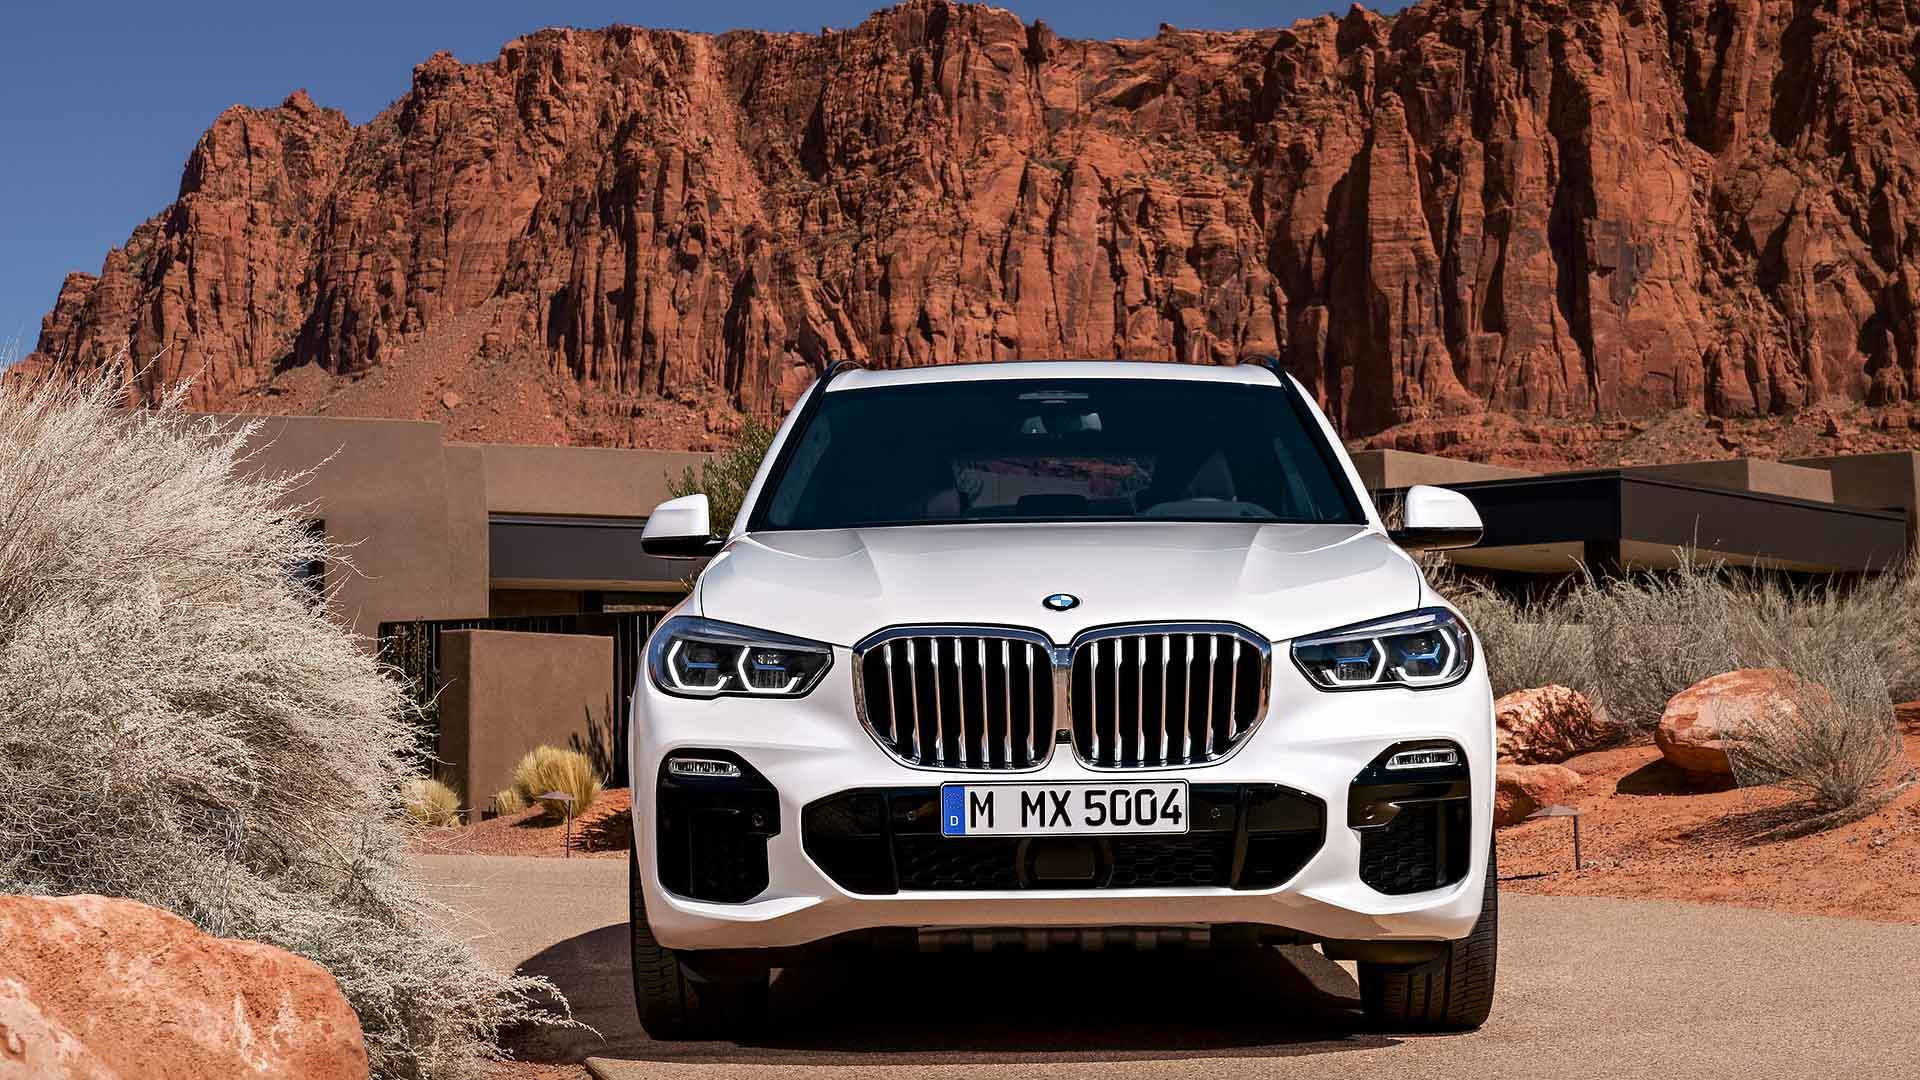 So-sanh-Mercedes-Benz-GLE-va-BMW-X5